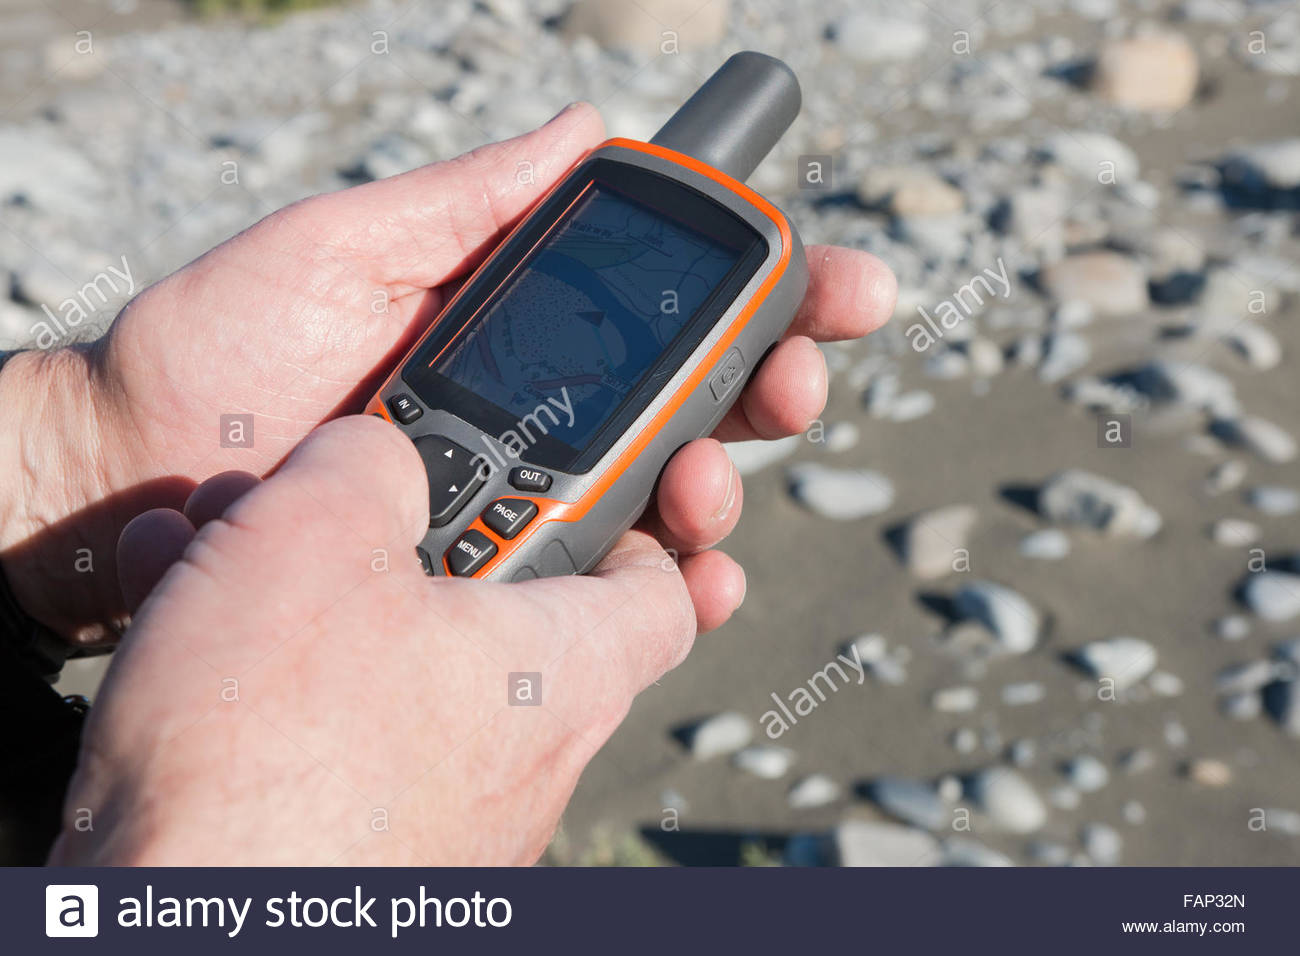 Navigation device in man's hands - Stock Image